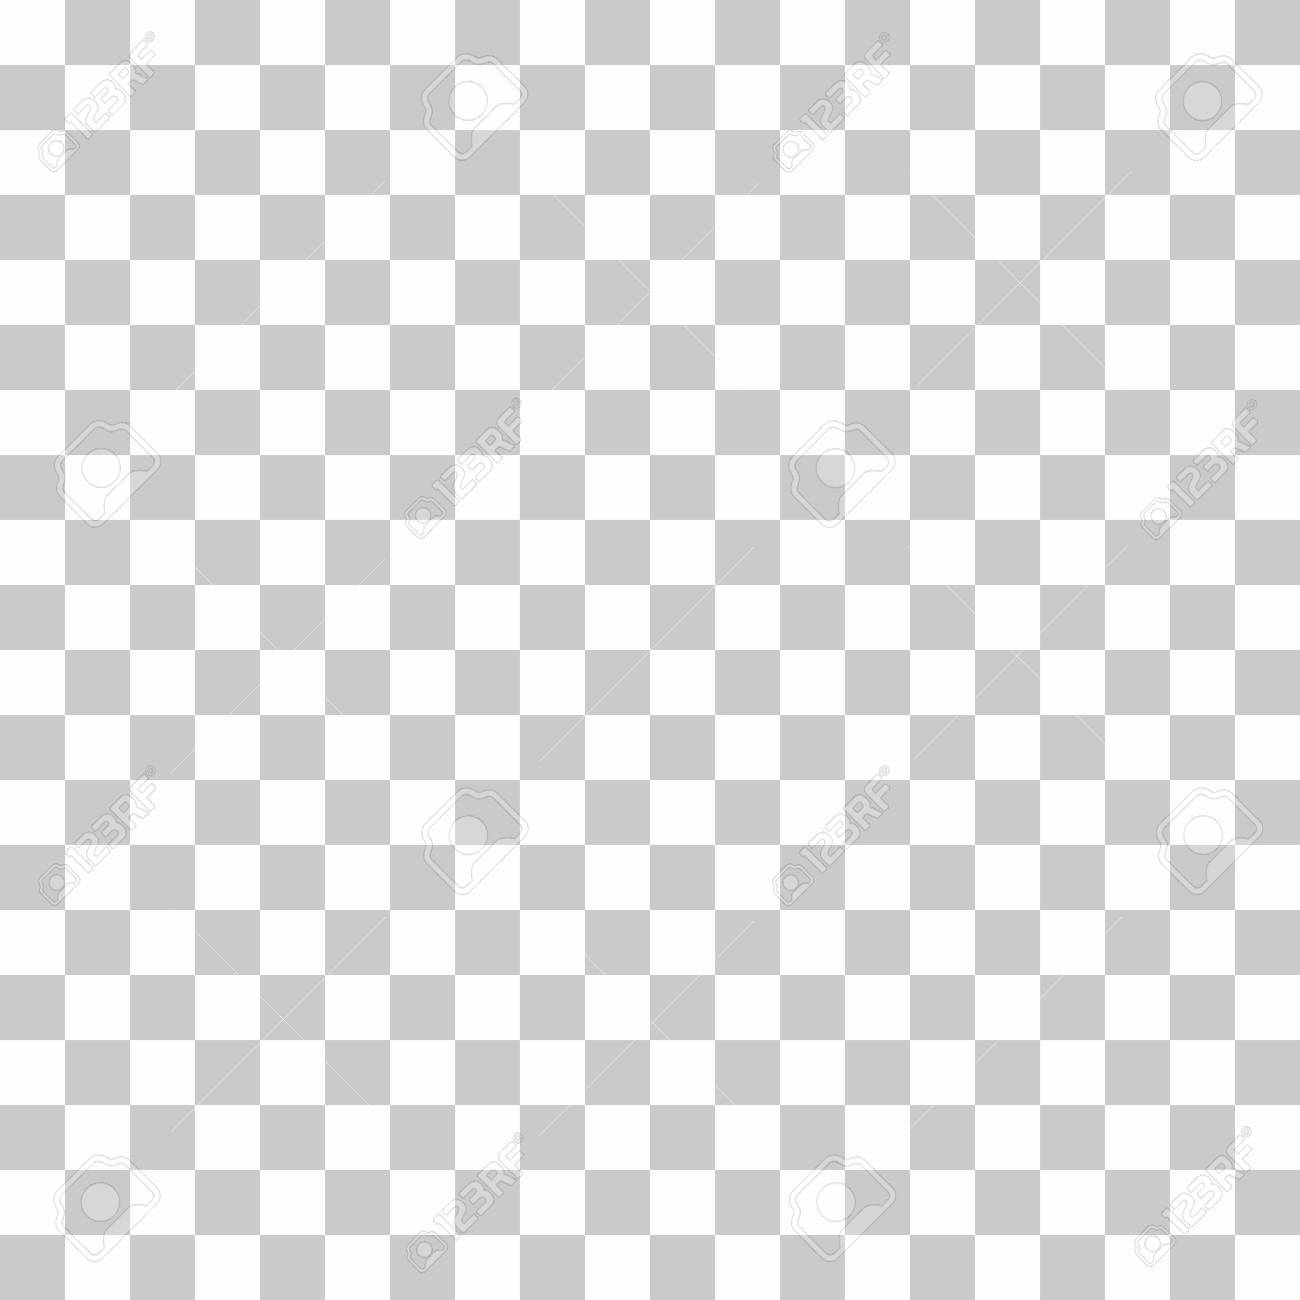 Seamless loopable abstract chess or png grid pattern background...